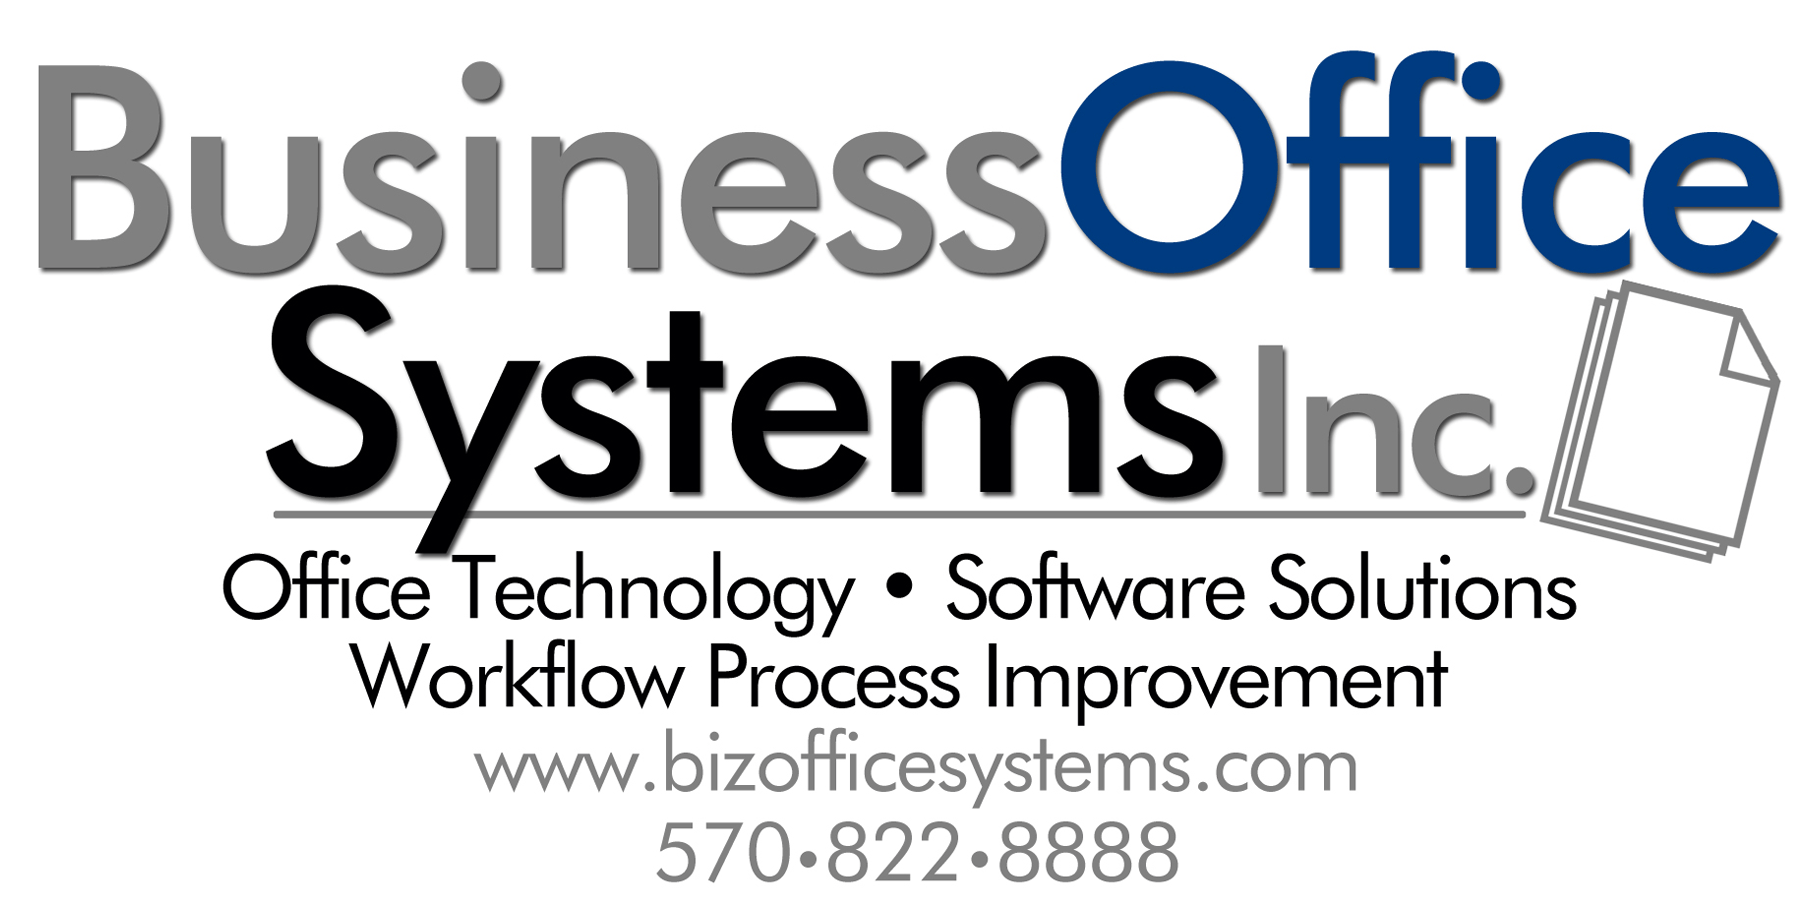 Business Office Systems